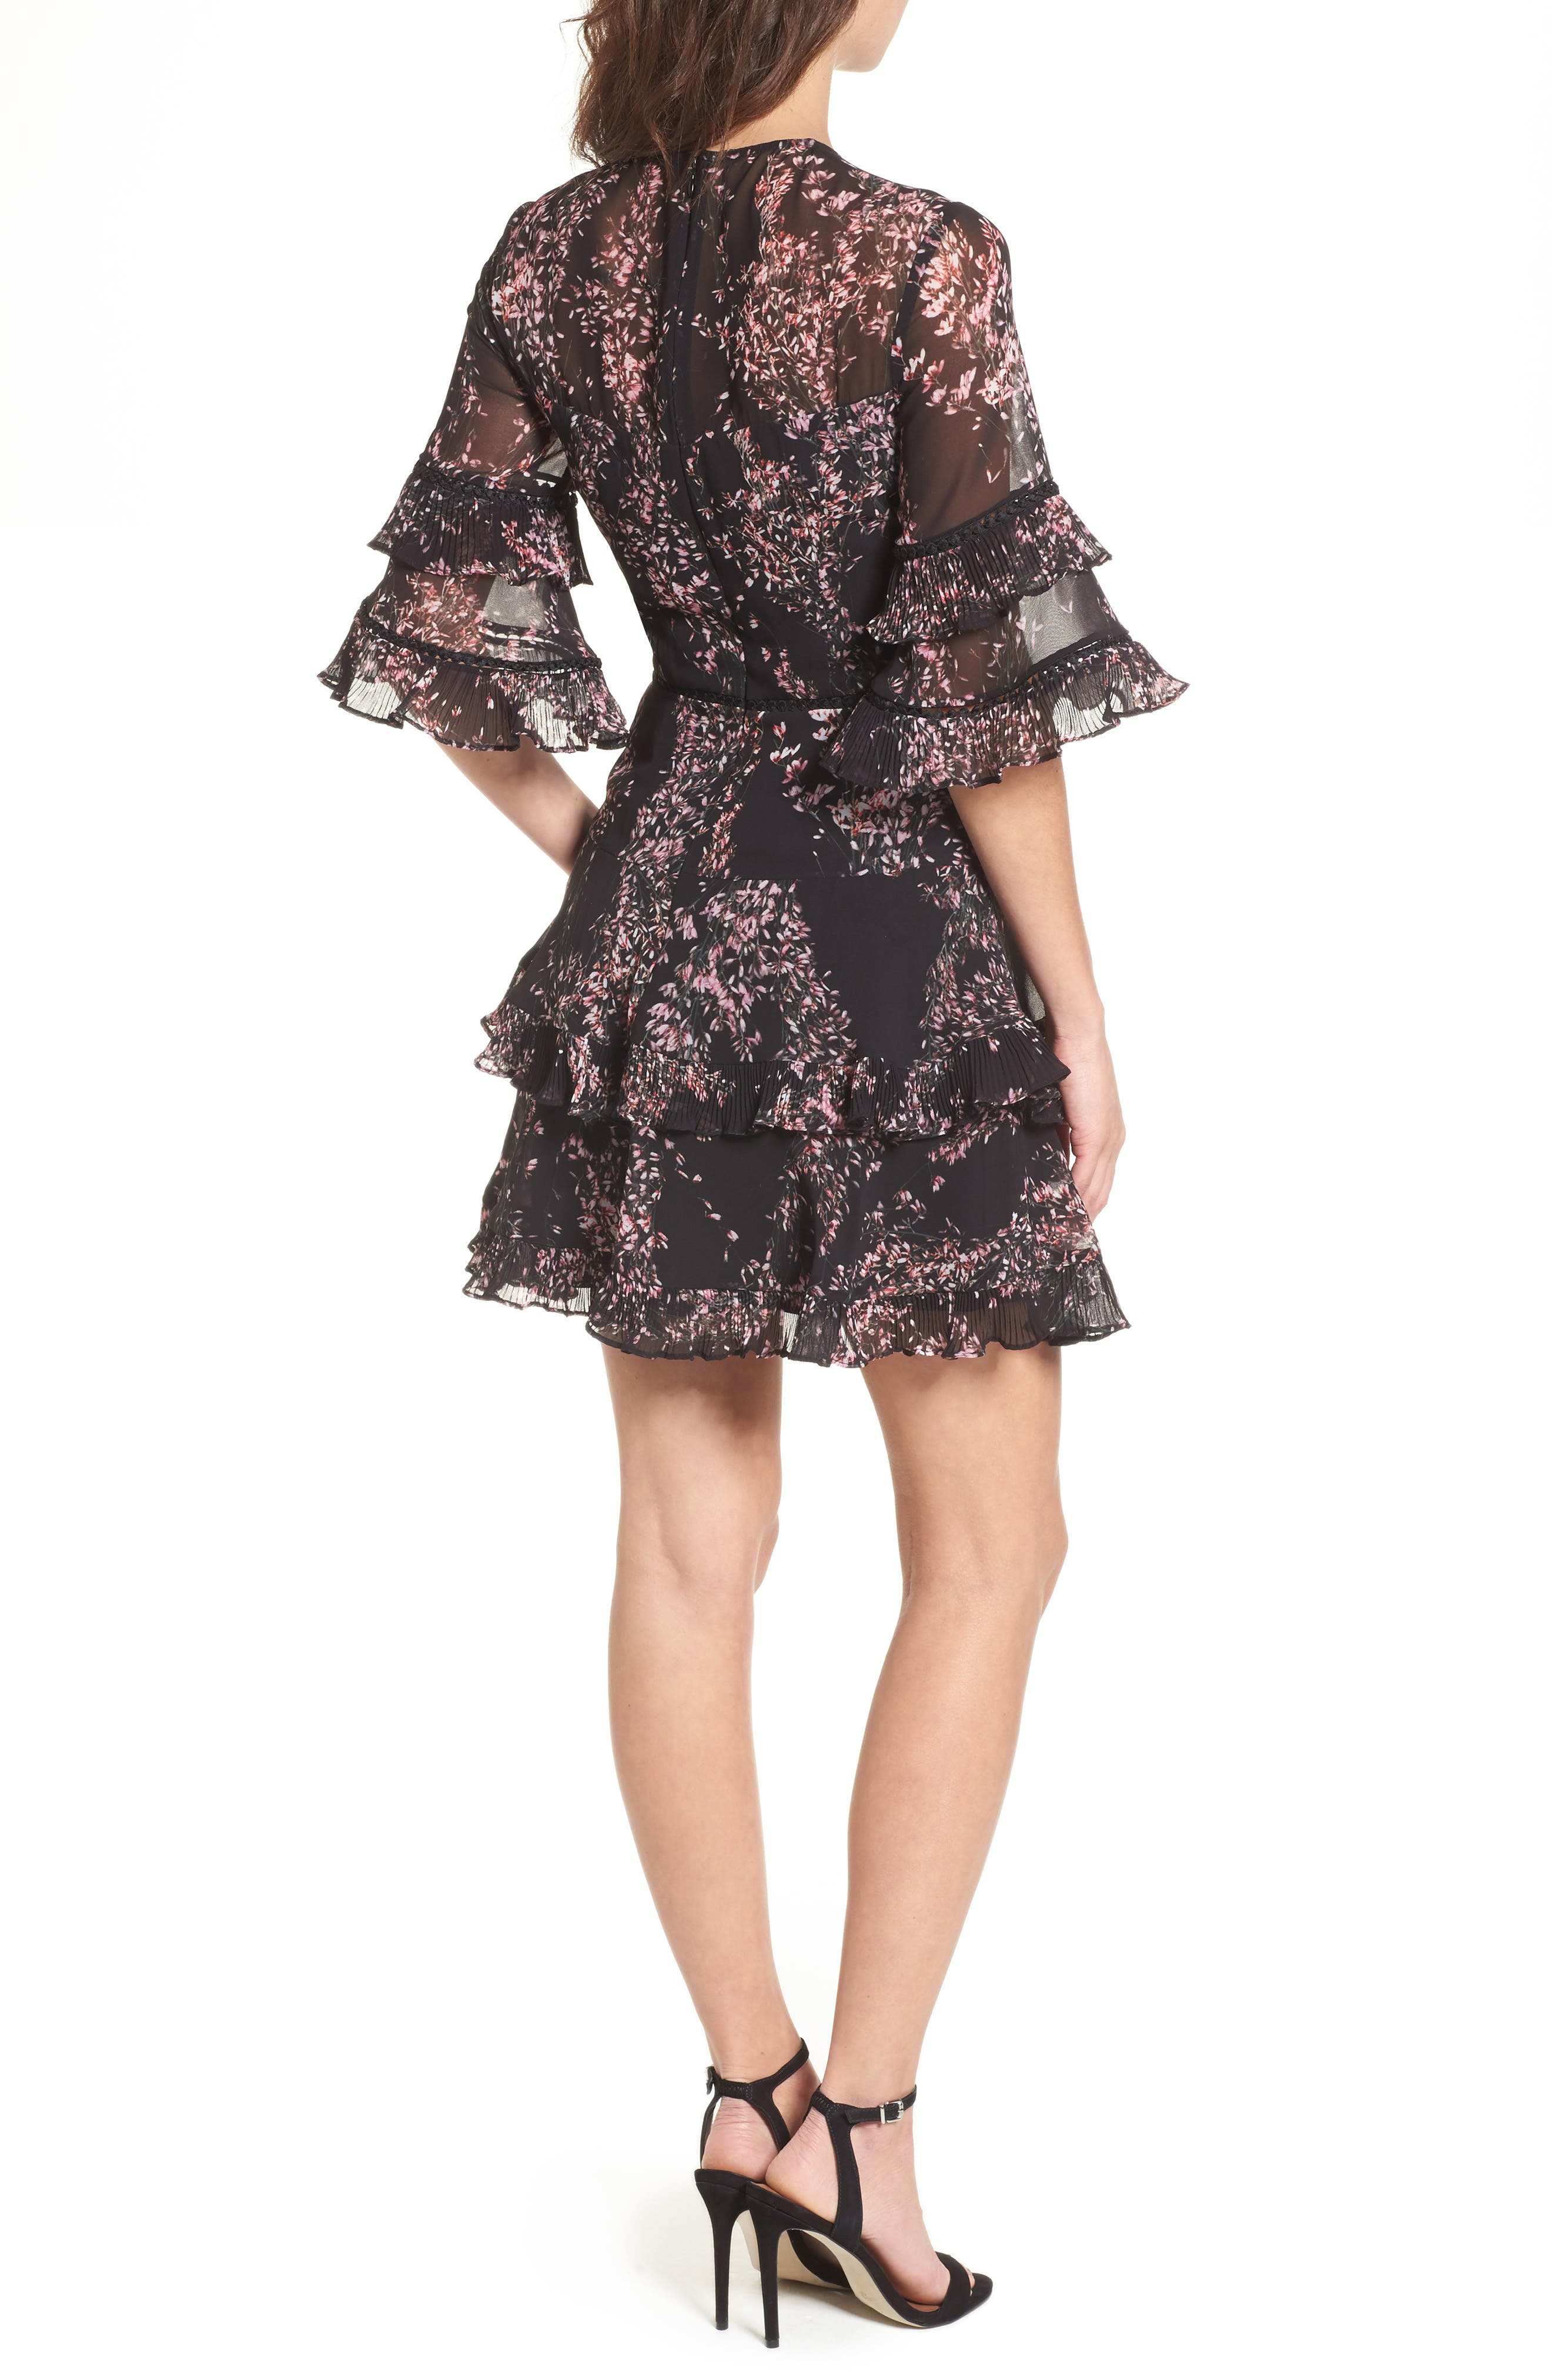 Light Up Ruffle Minidress,                             Alternate thumbnail 2, color,                             Black Wildflower Floral